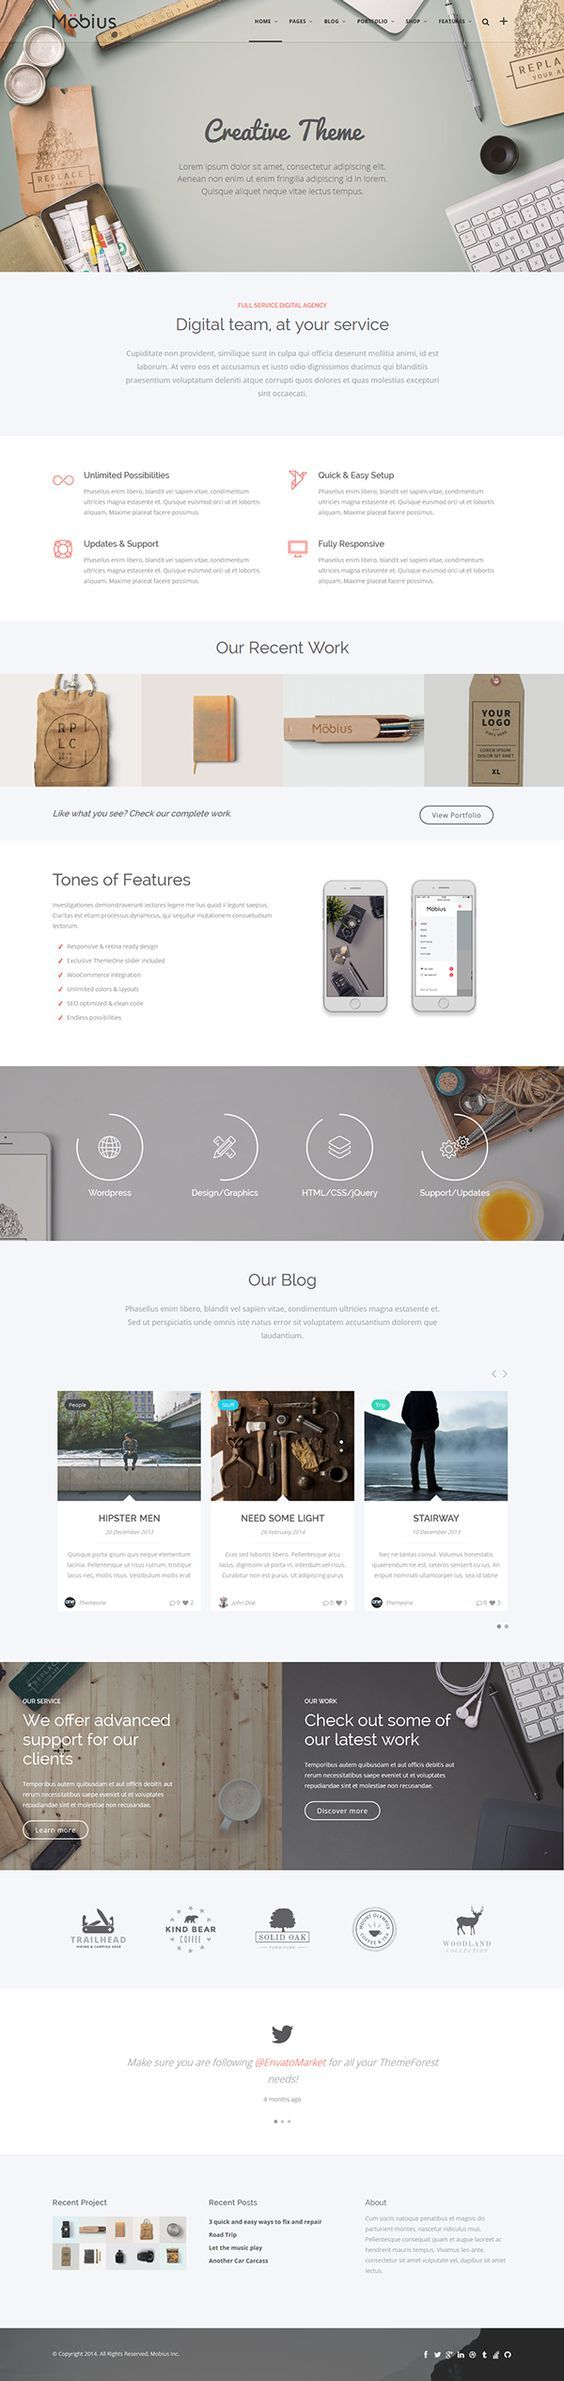 Feature a product/service at the top then its main selling points. Inspiration for emails, but great for landing pages. Mobius - Responsive Multi-Purpose WordPress Themew: